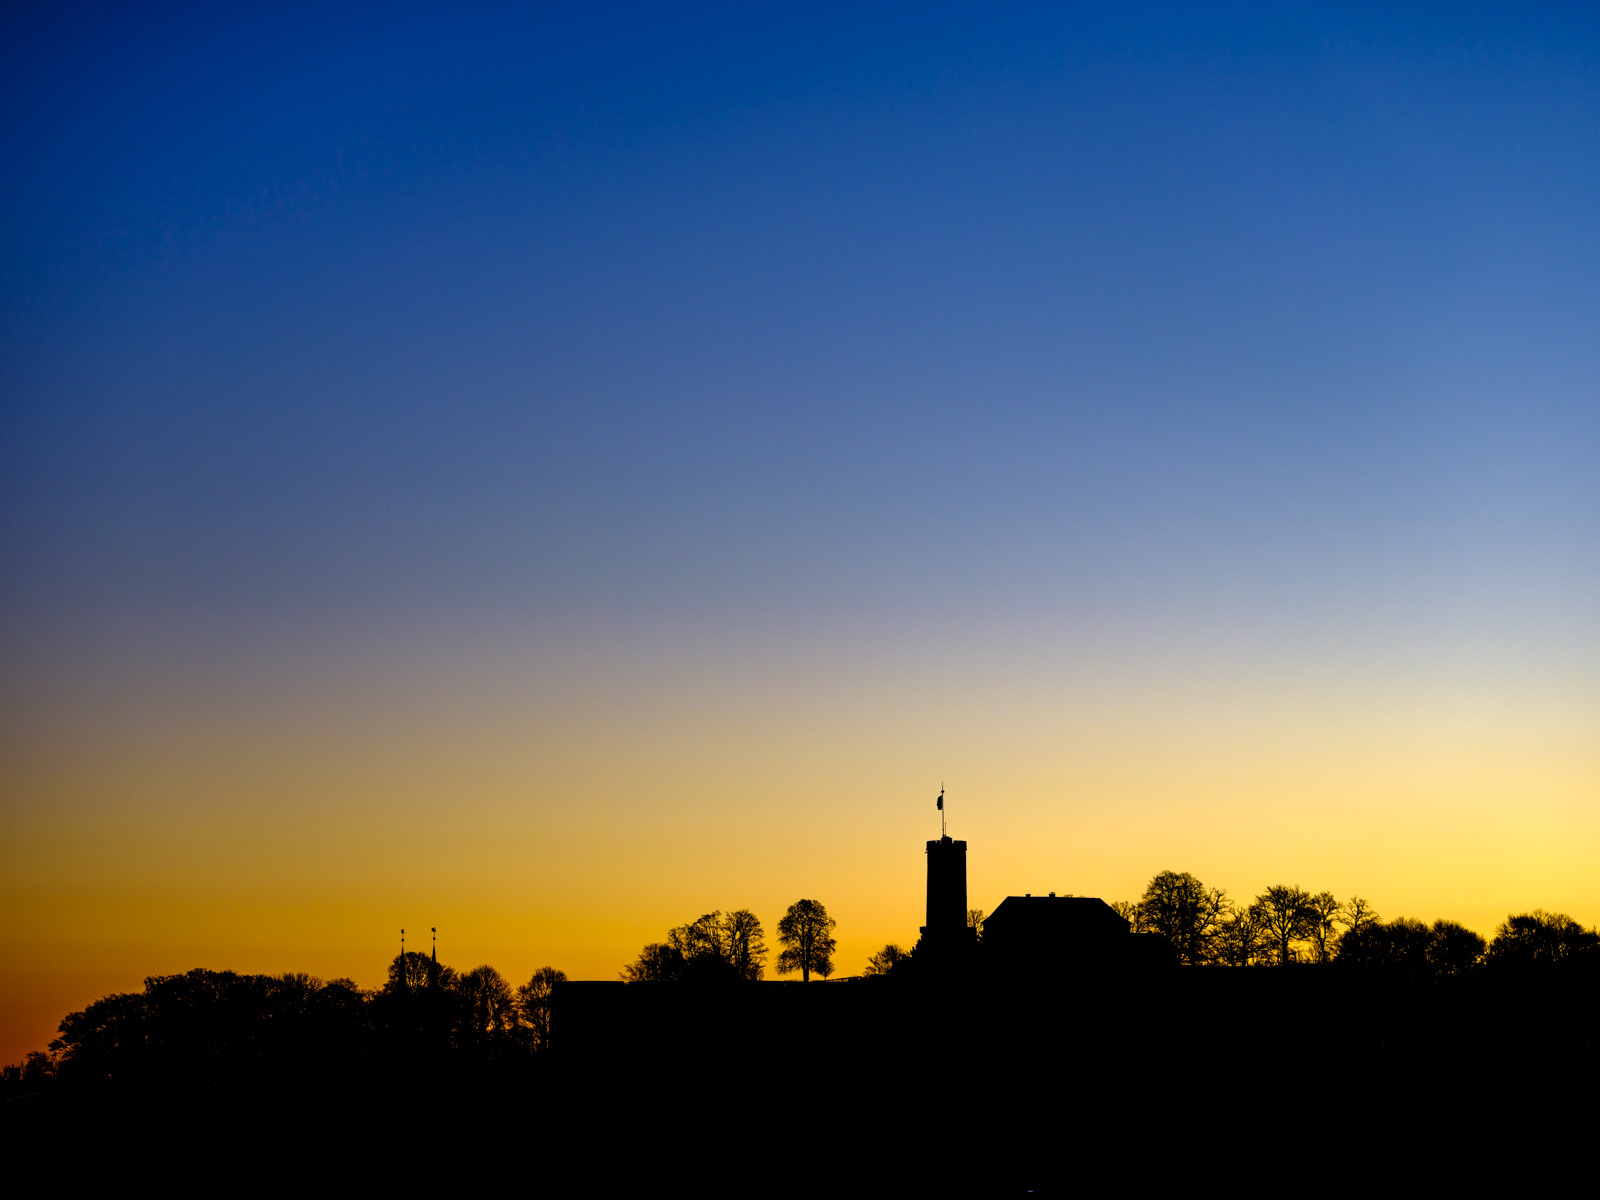 Sparrenburg Castle silhouette at dawn.